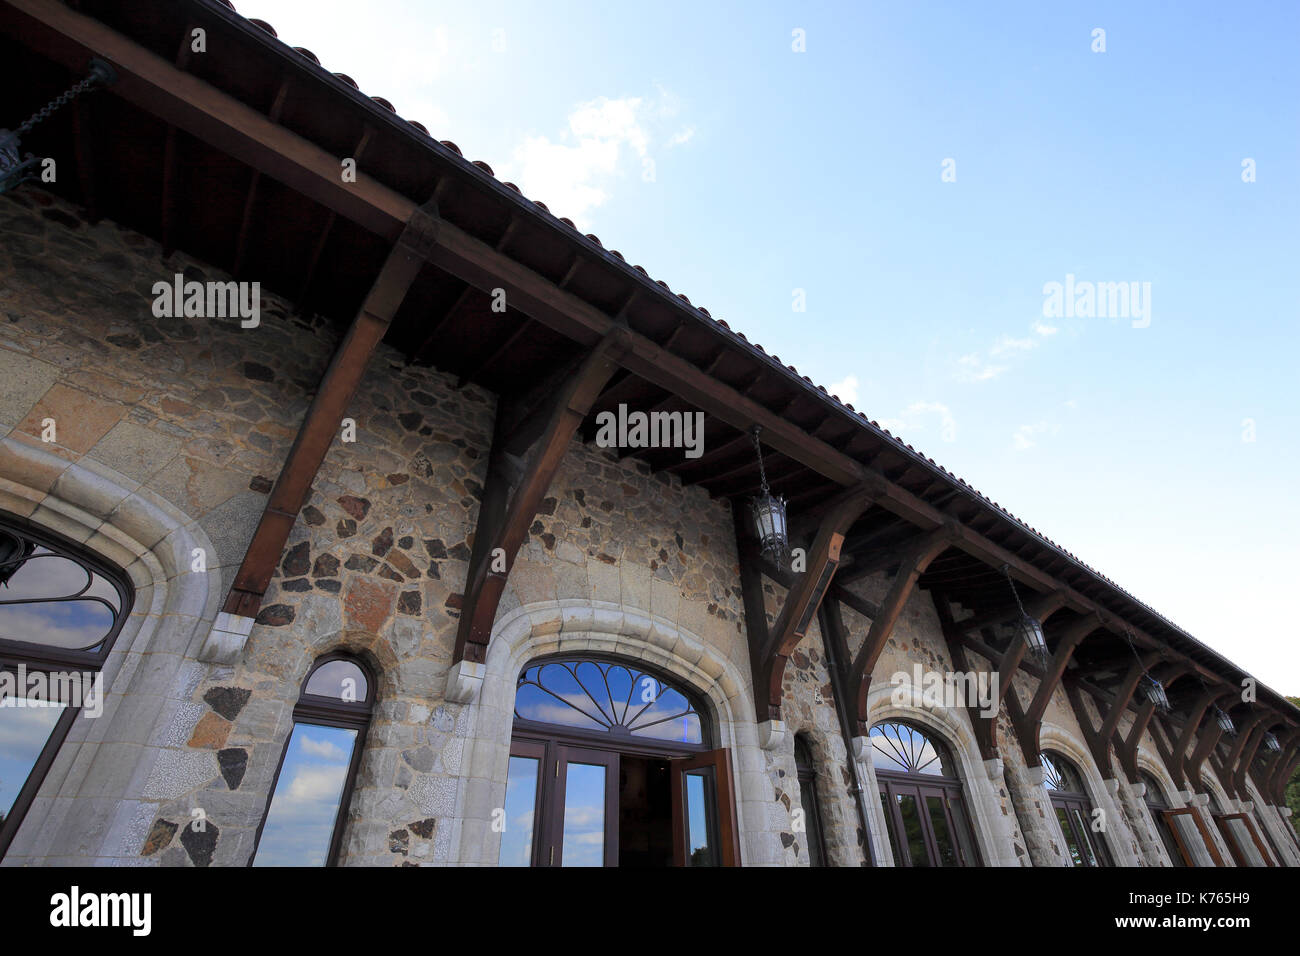 Chalet du Mont-Royal, Montreal Canada - Stock Image